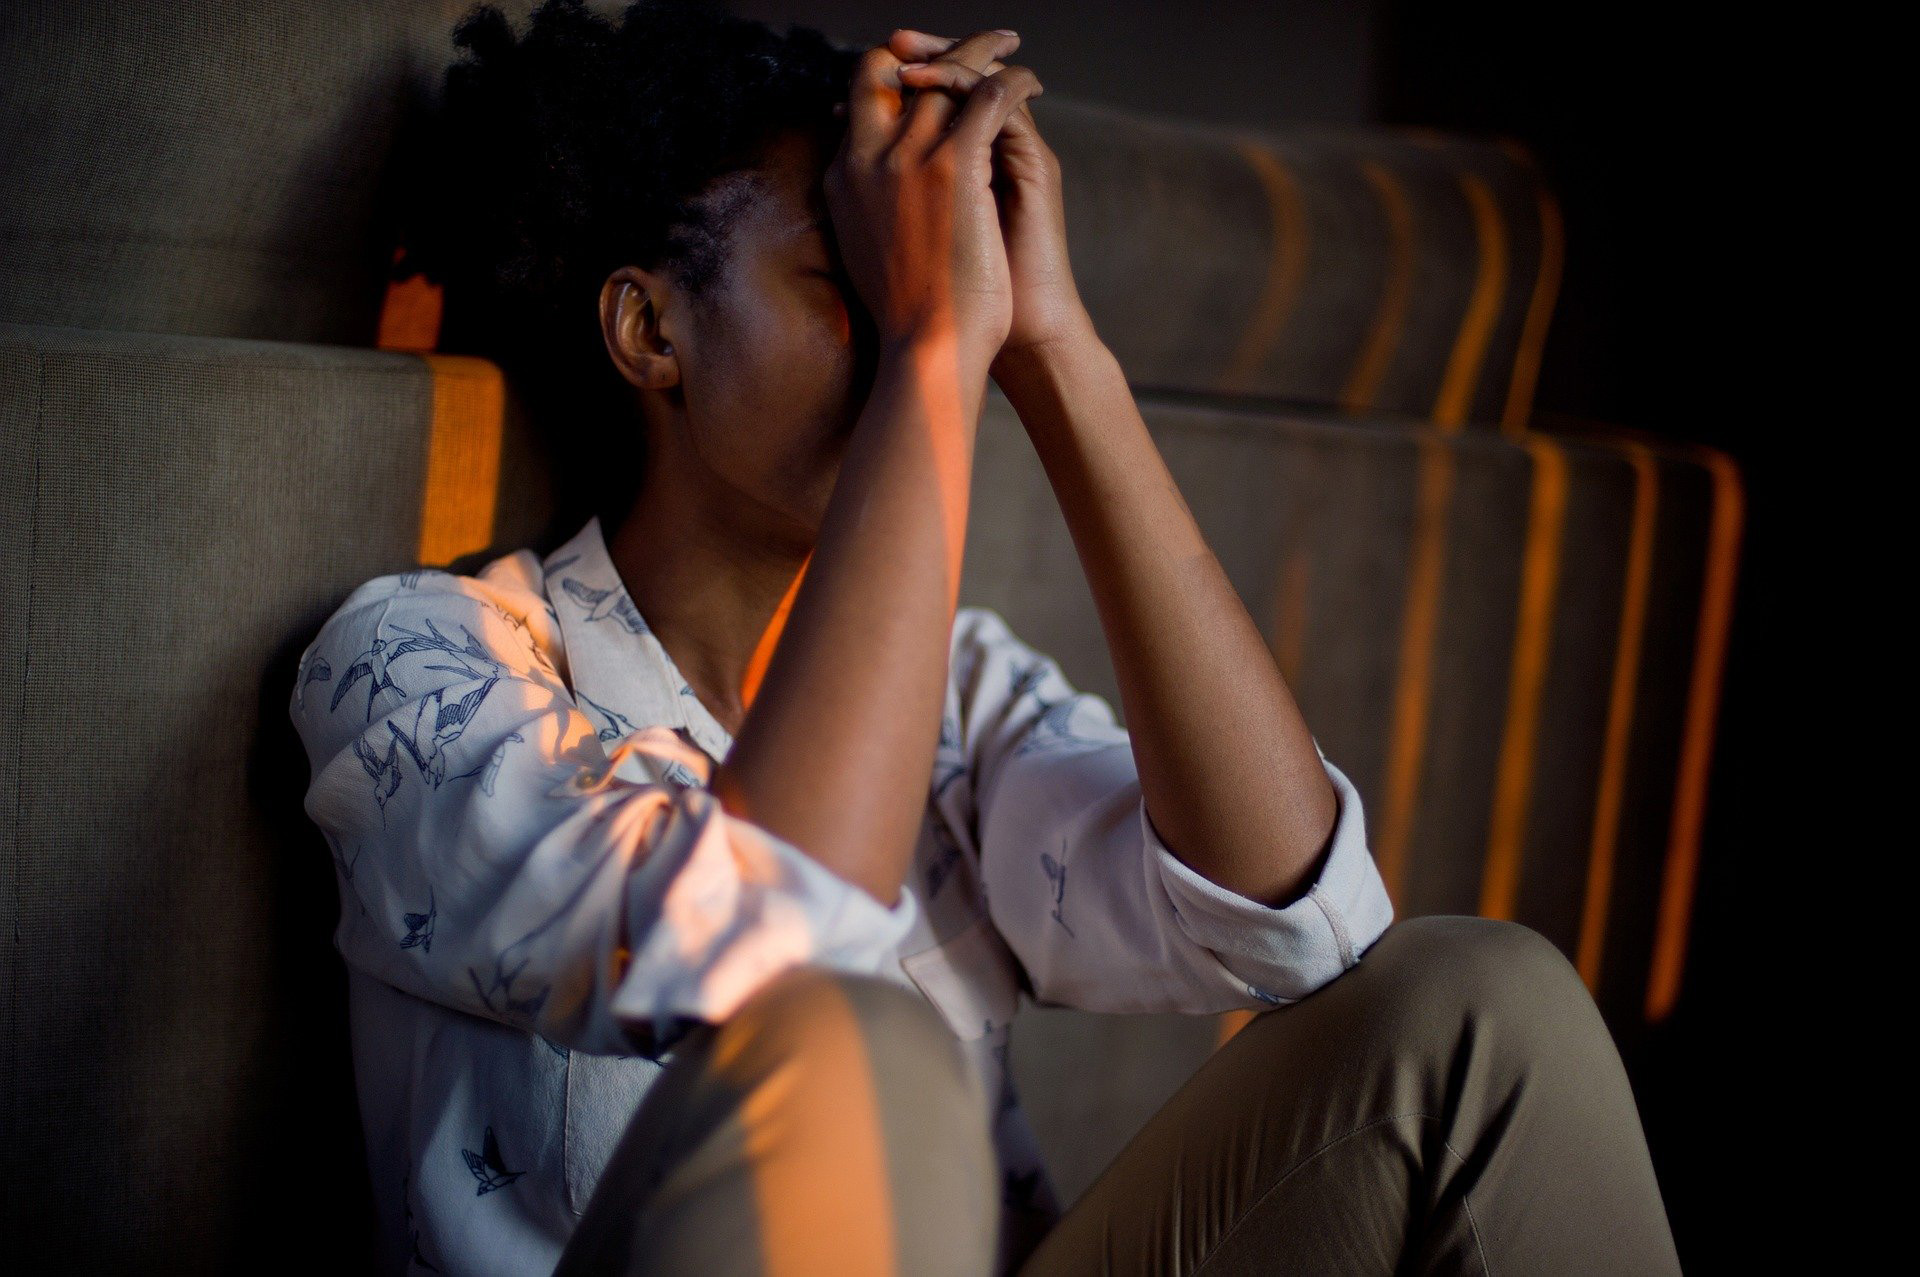 Coping with Stress and Anxiety during the COVID-19 Pandemic